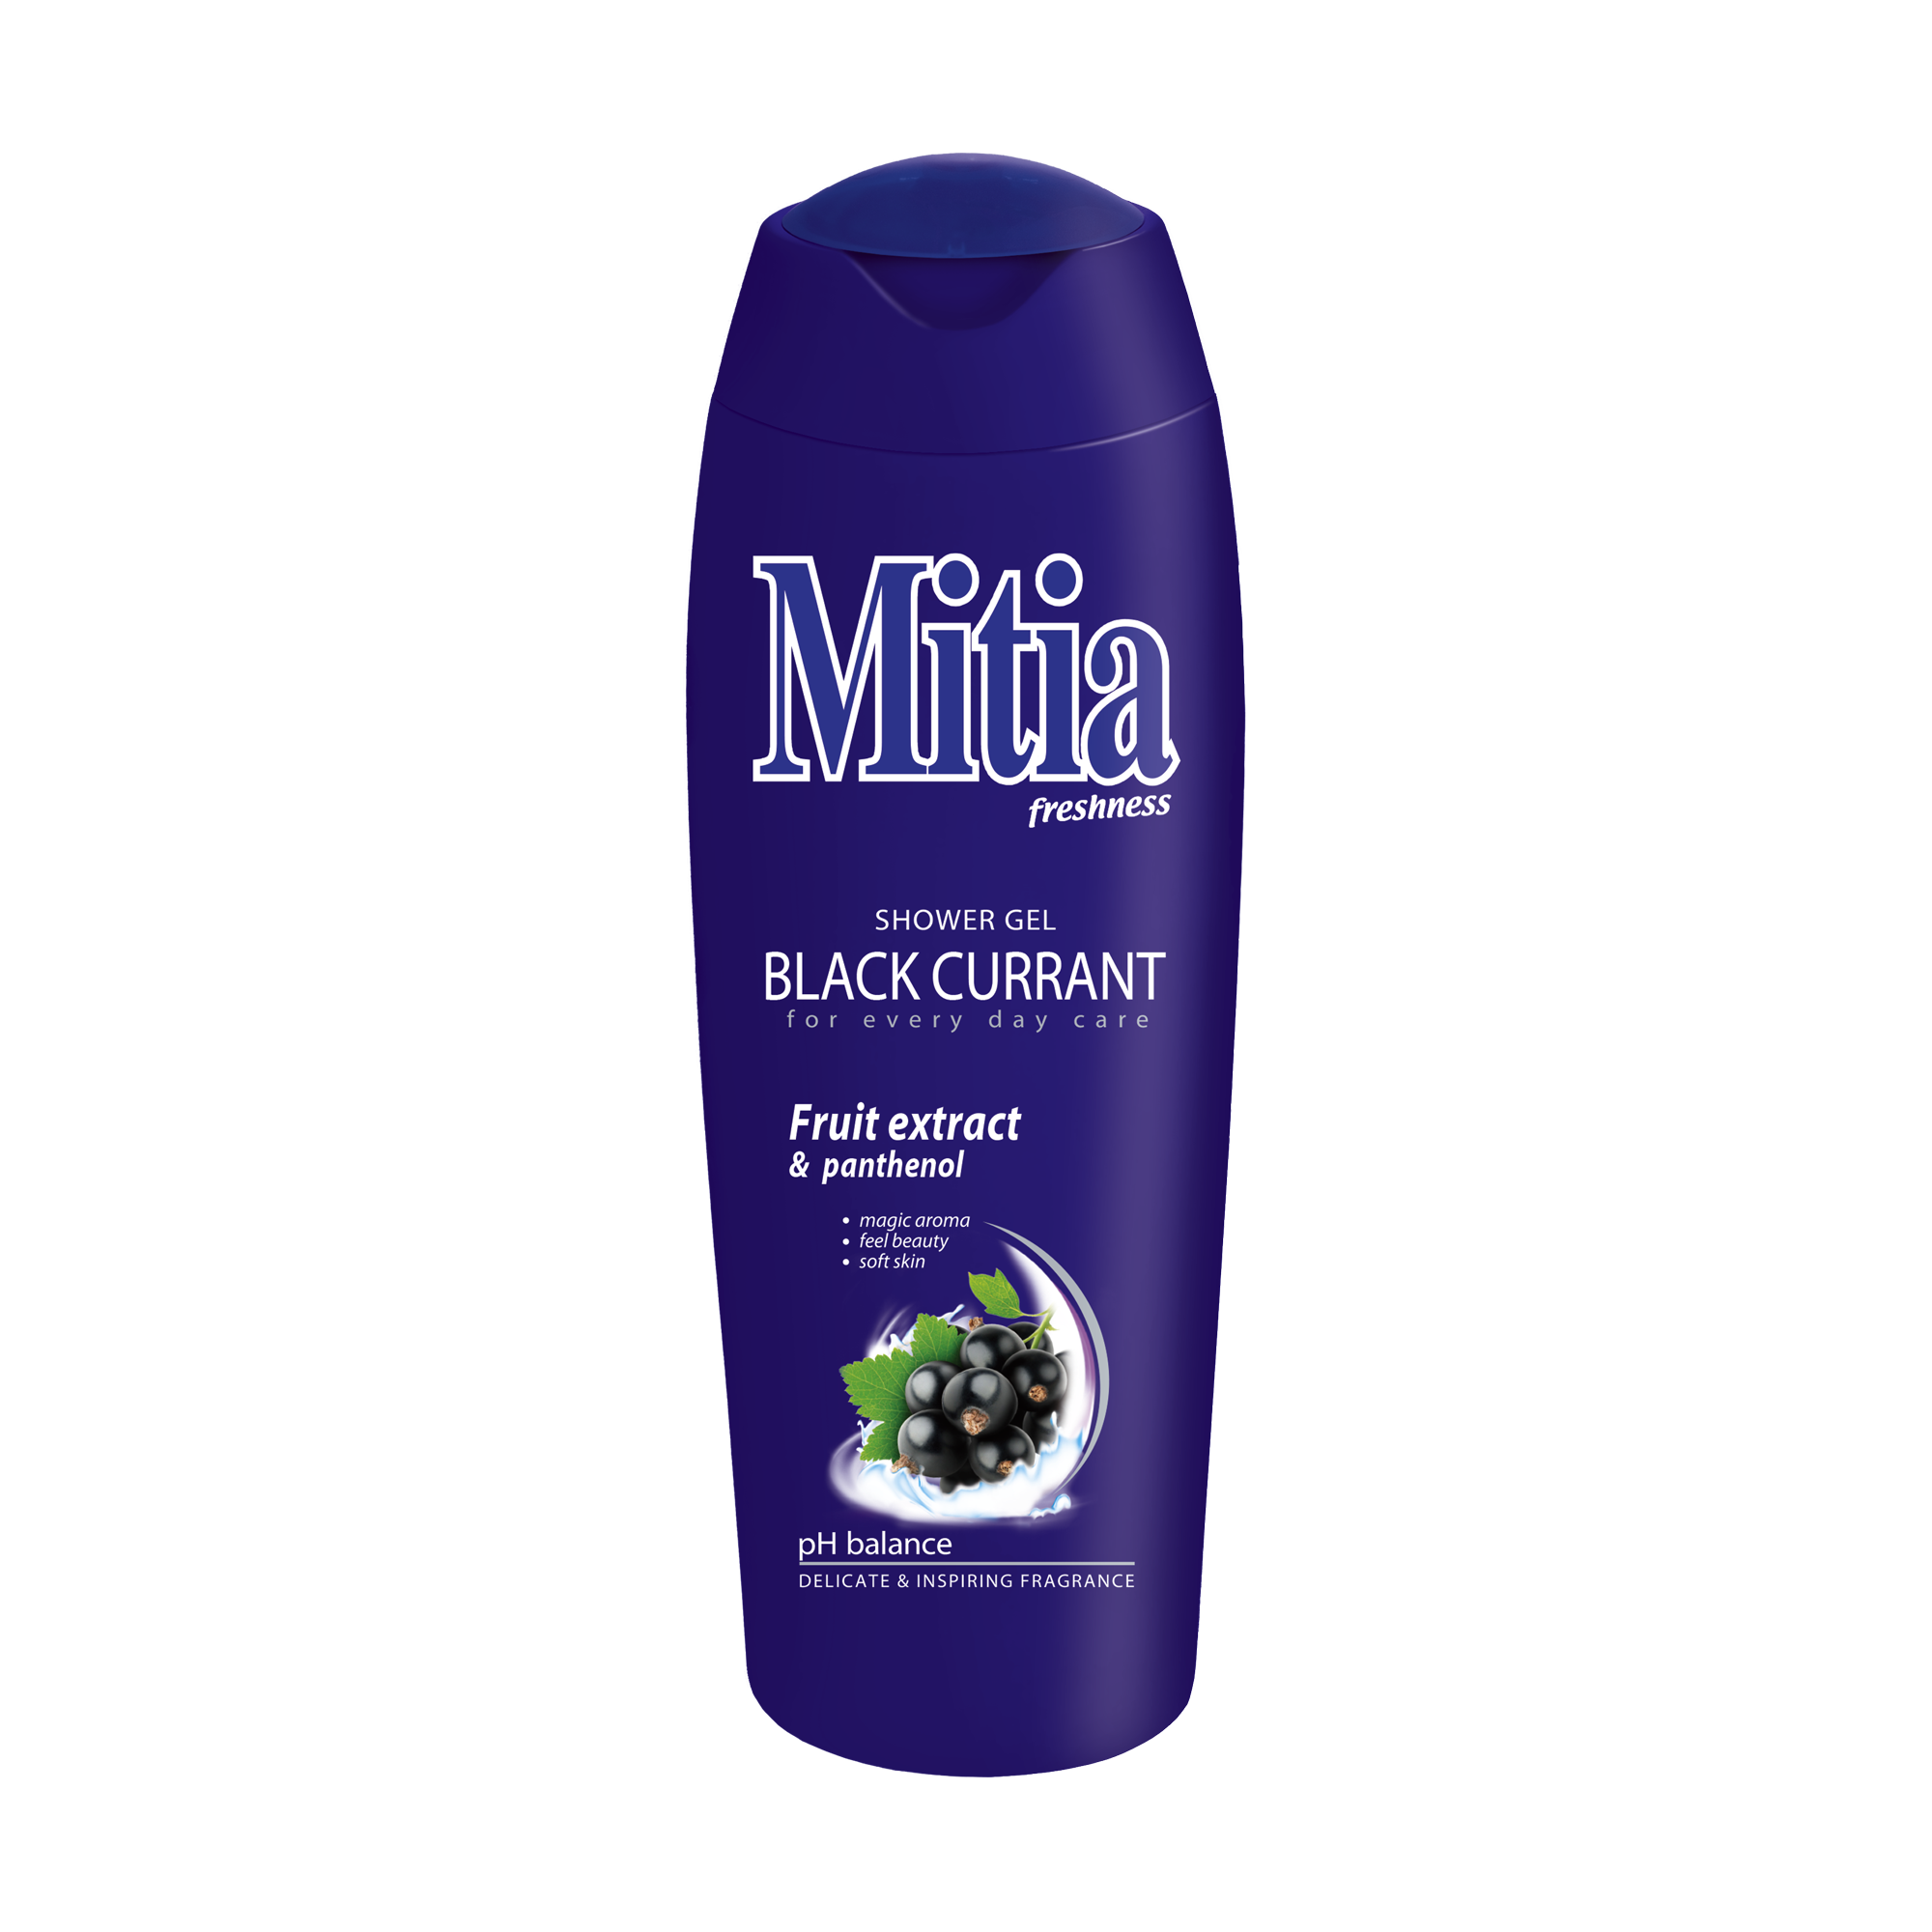 Mitia freshness Black Currant shower gel